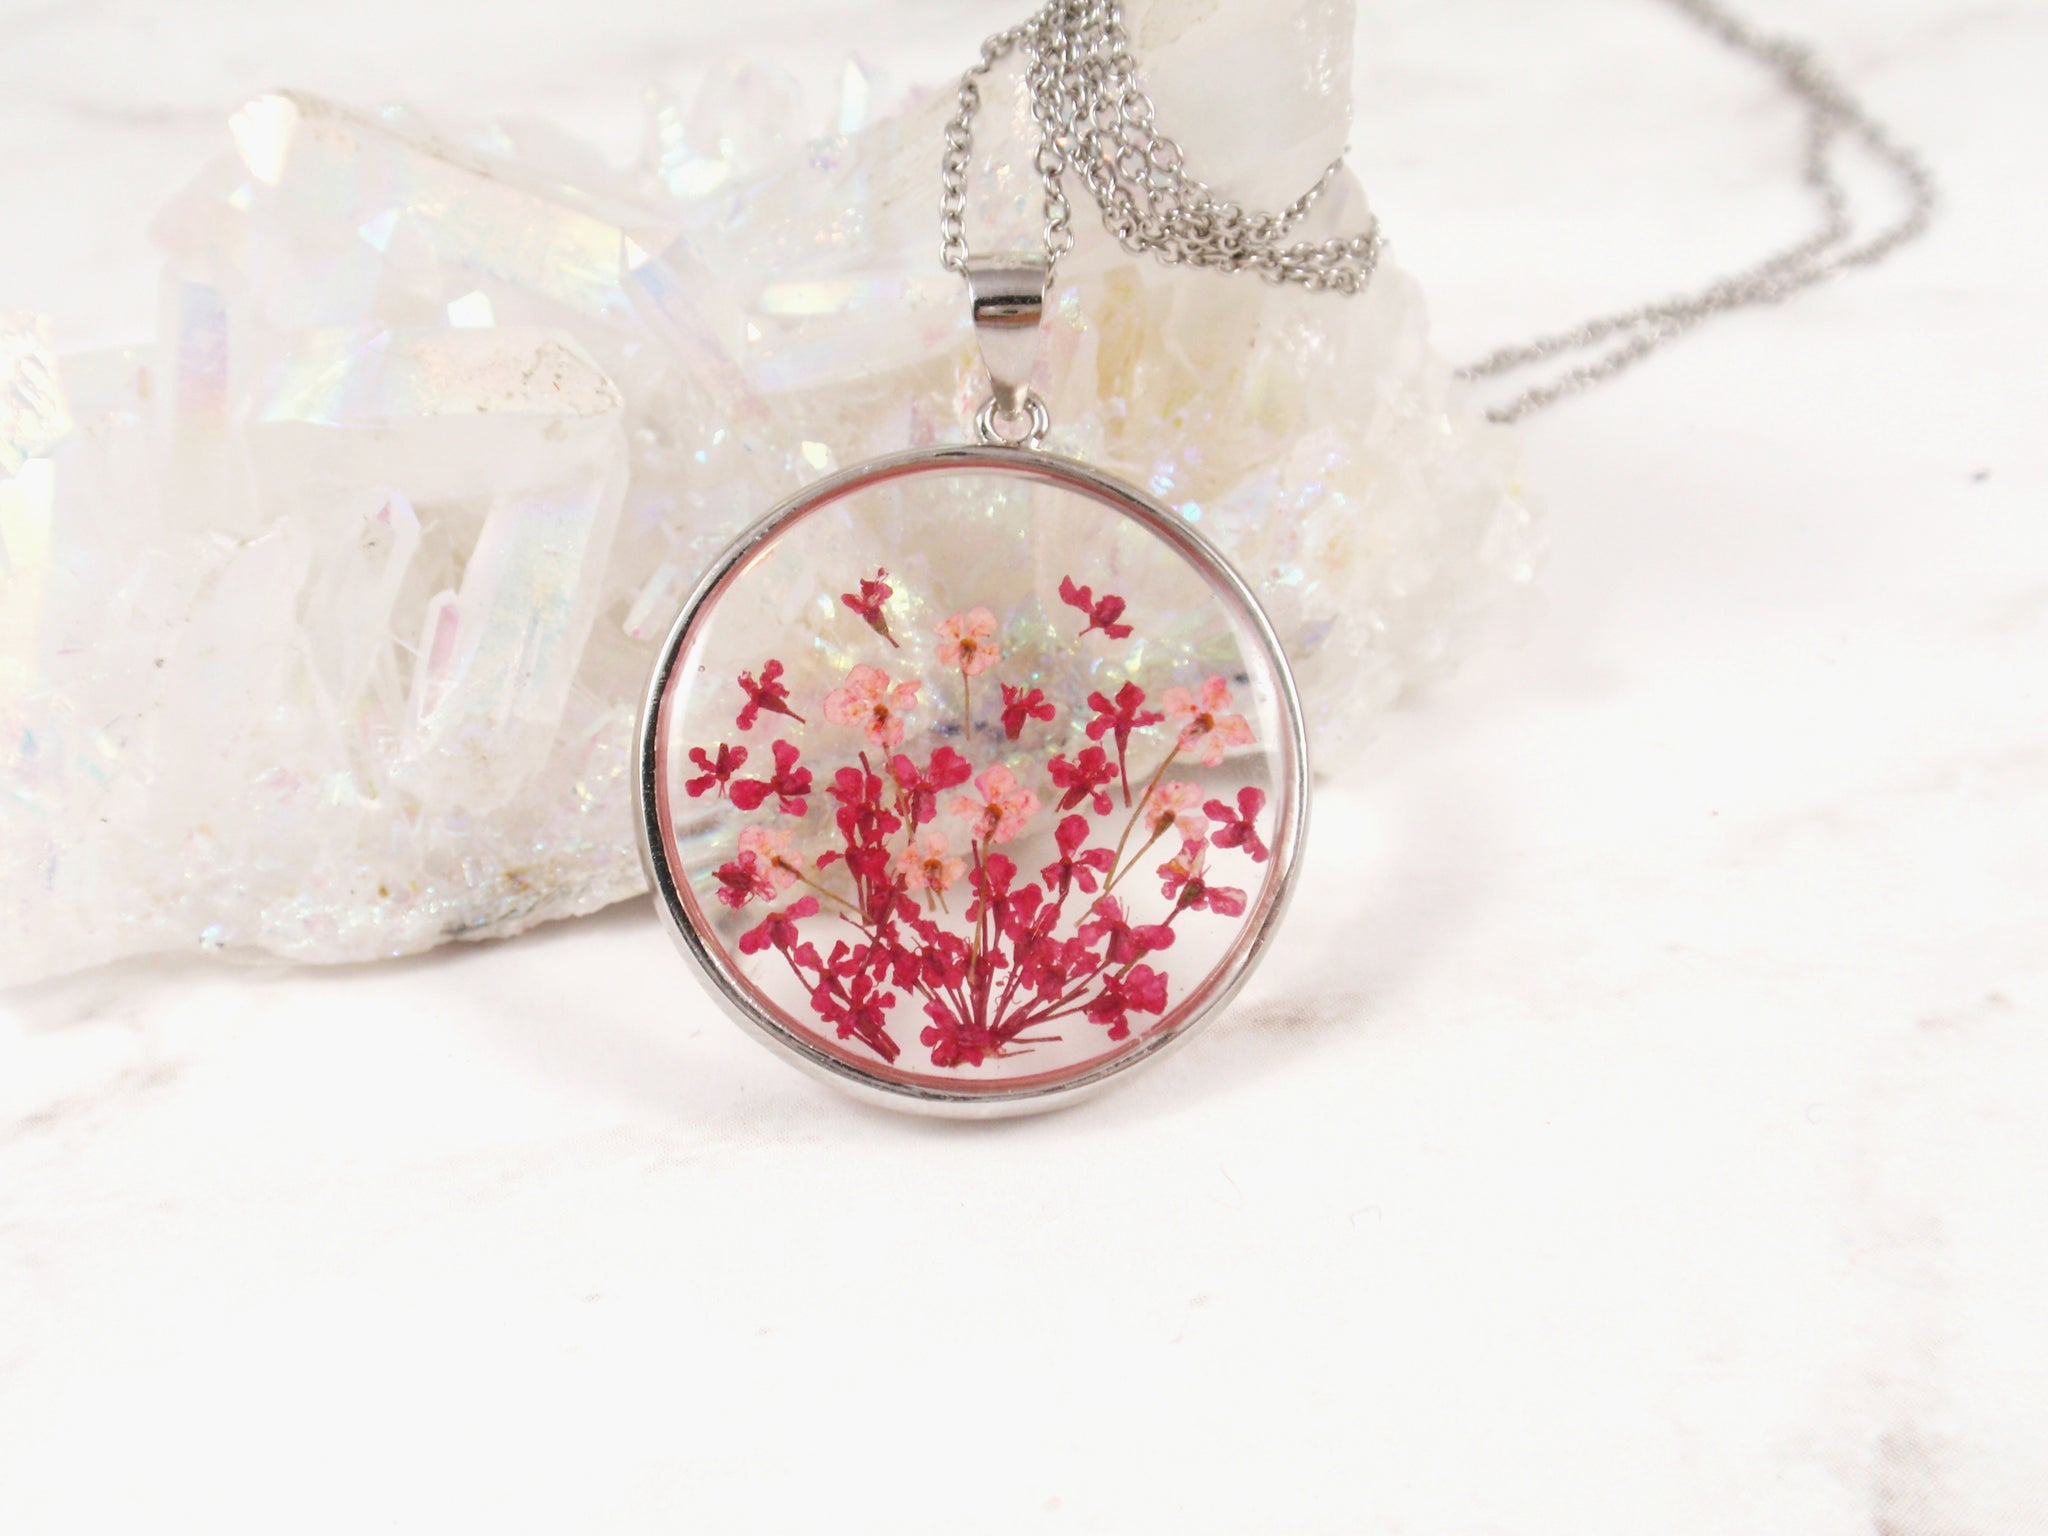 Queen Annes lace flower resin necklace